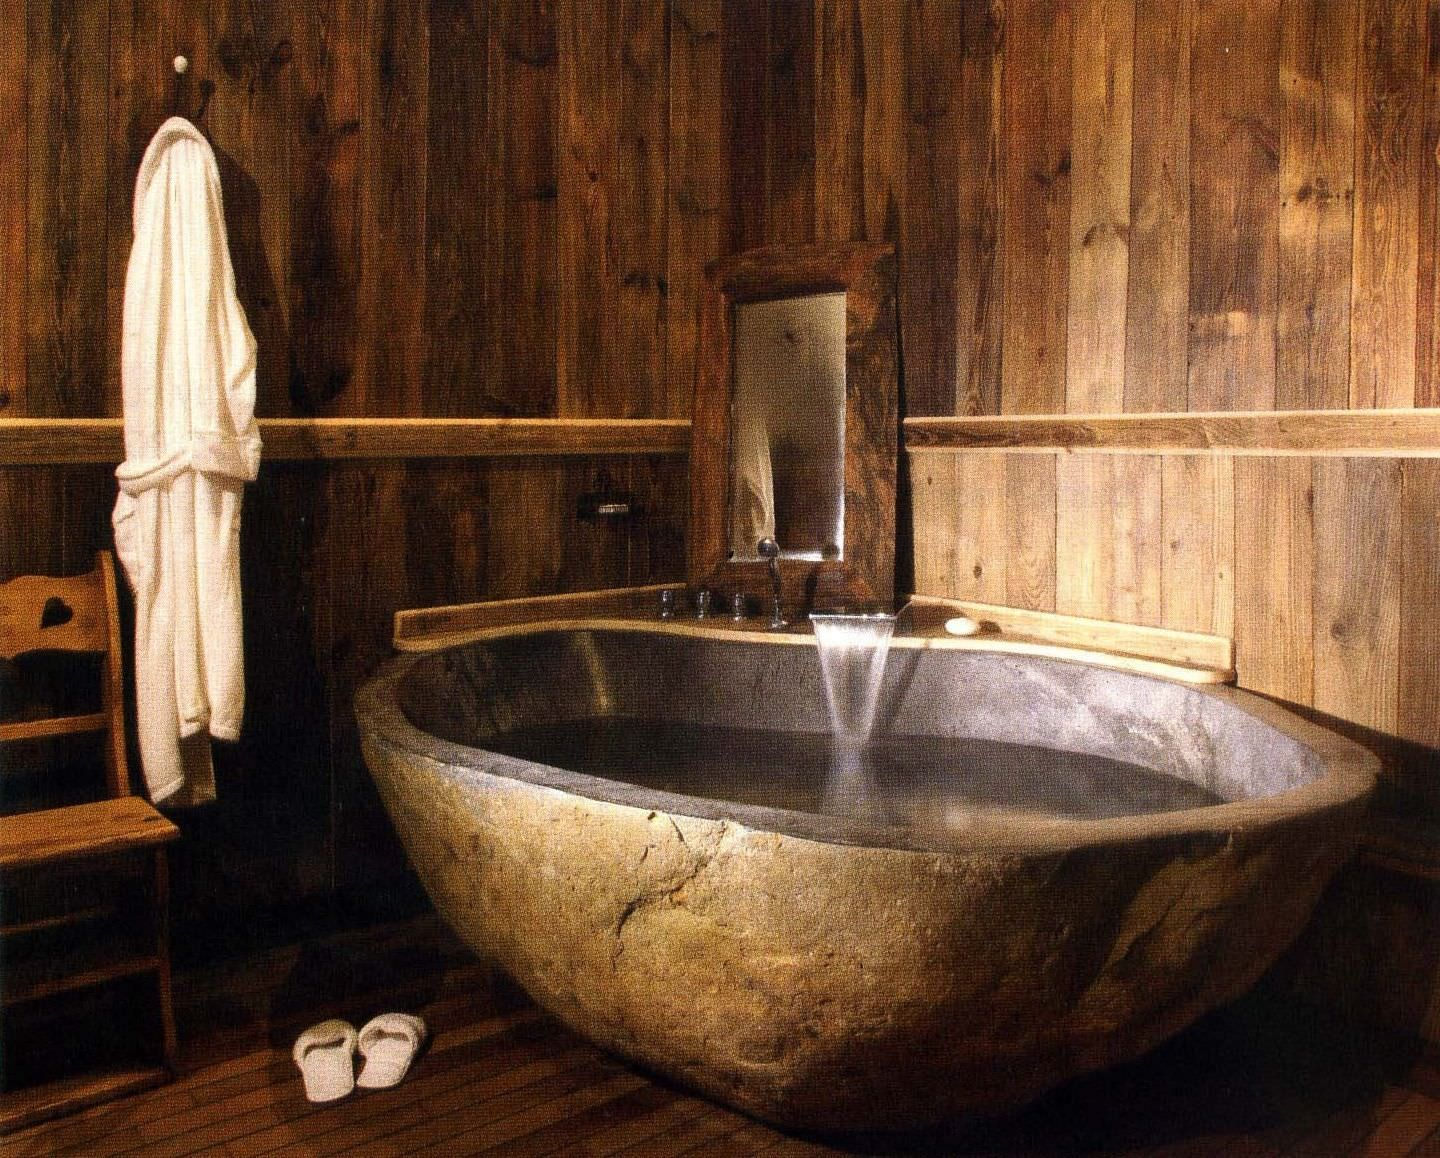 Rustic Design Ideas country rustic bedroom design ideas 1000 Images About Creative Bathroom Designs On Pinterest Rustic Bathrooms Small Bathrooms And Small Bathroom Decorating